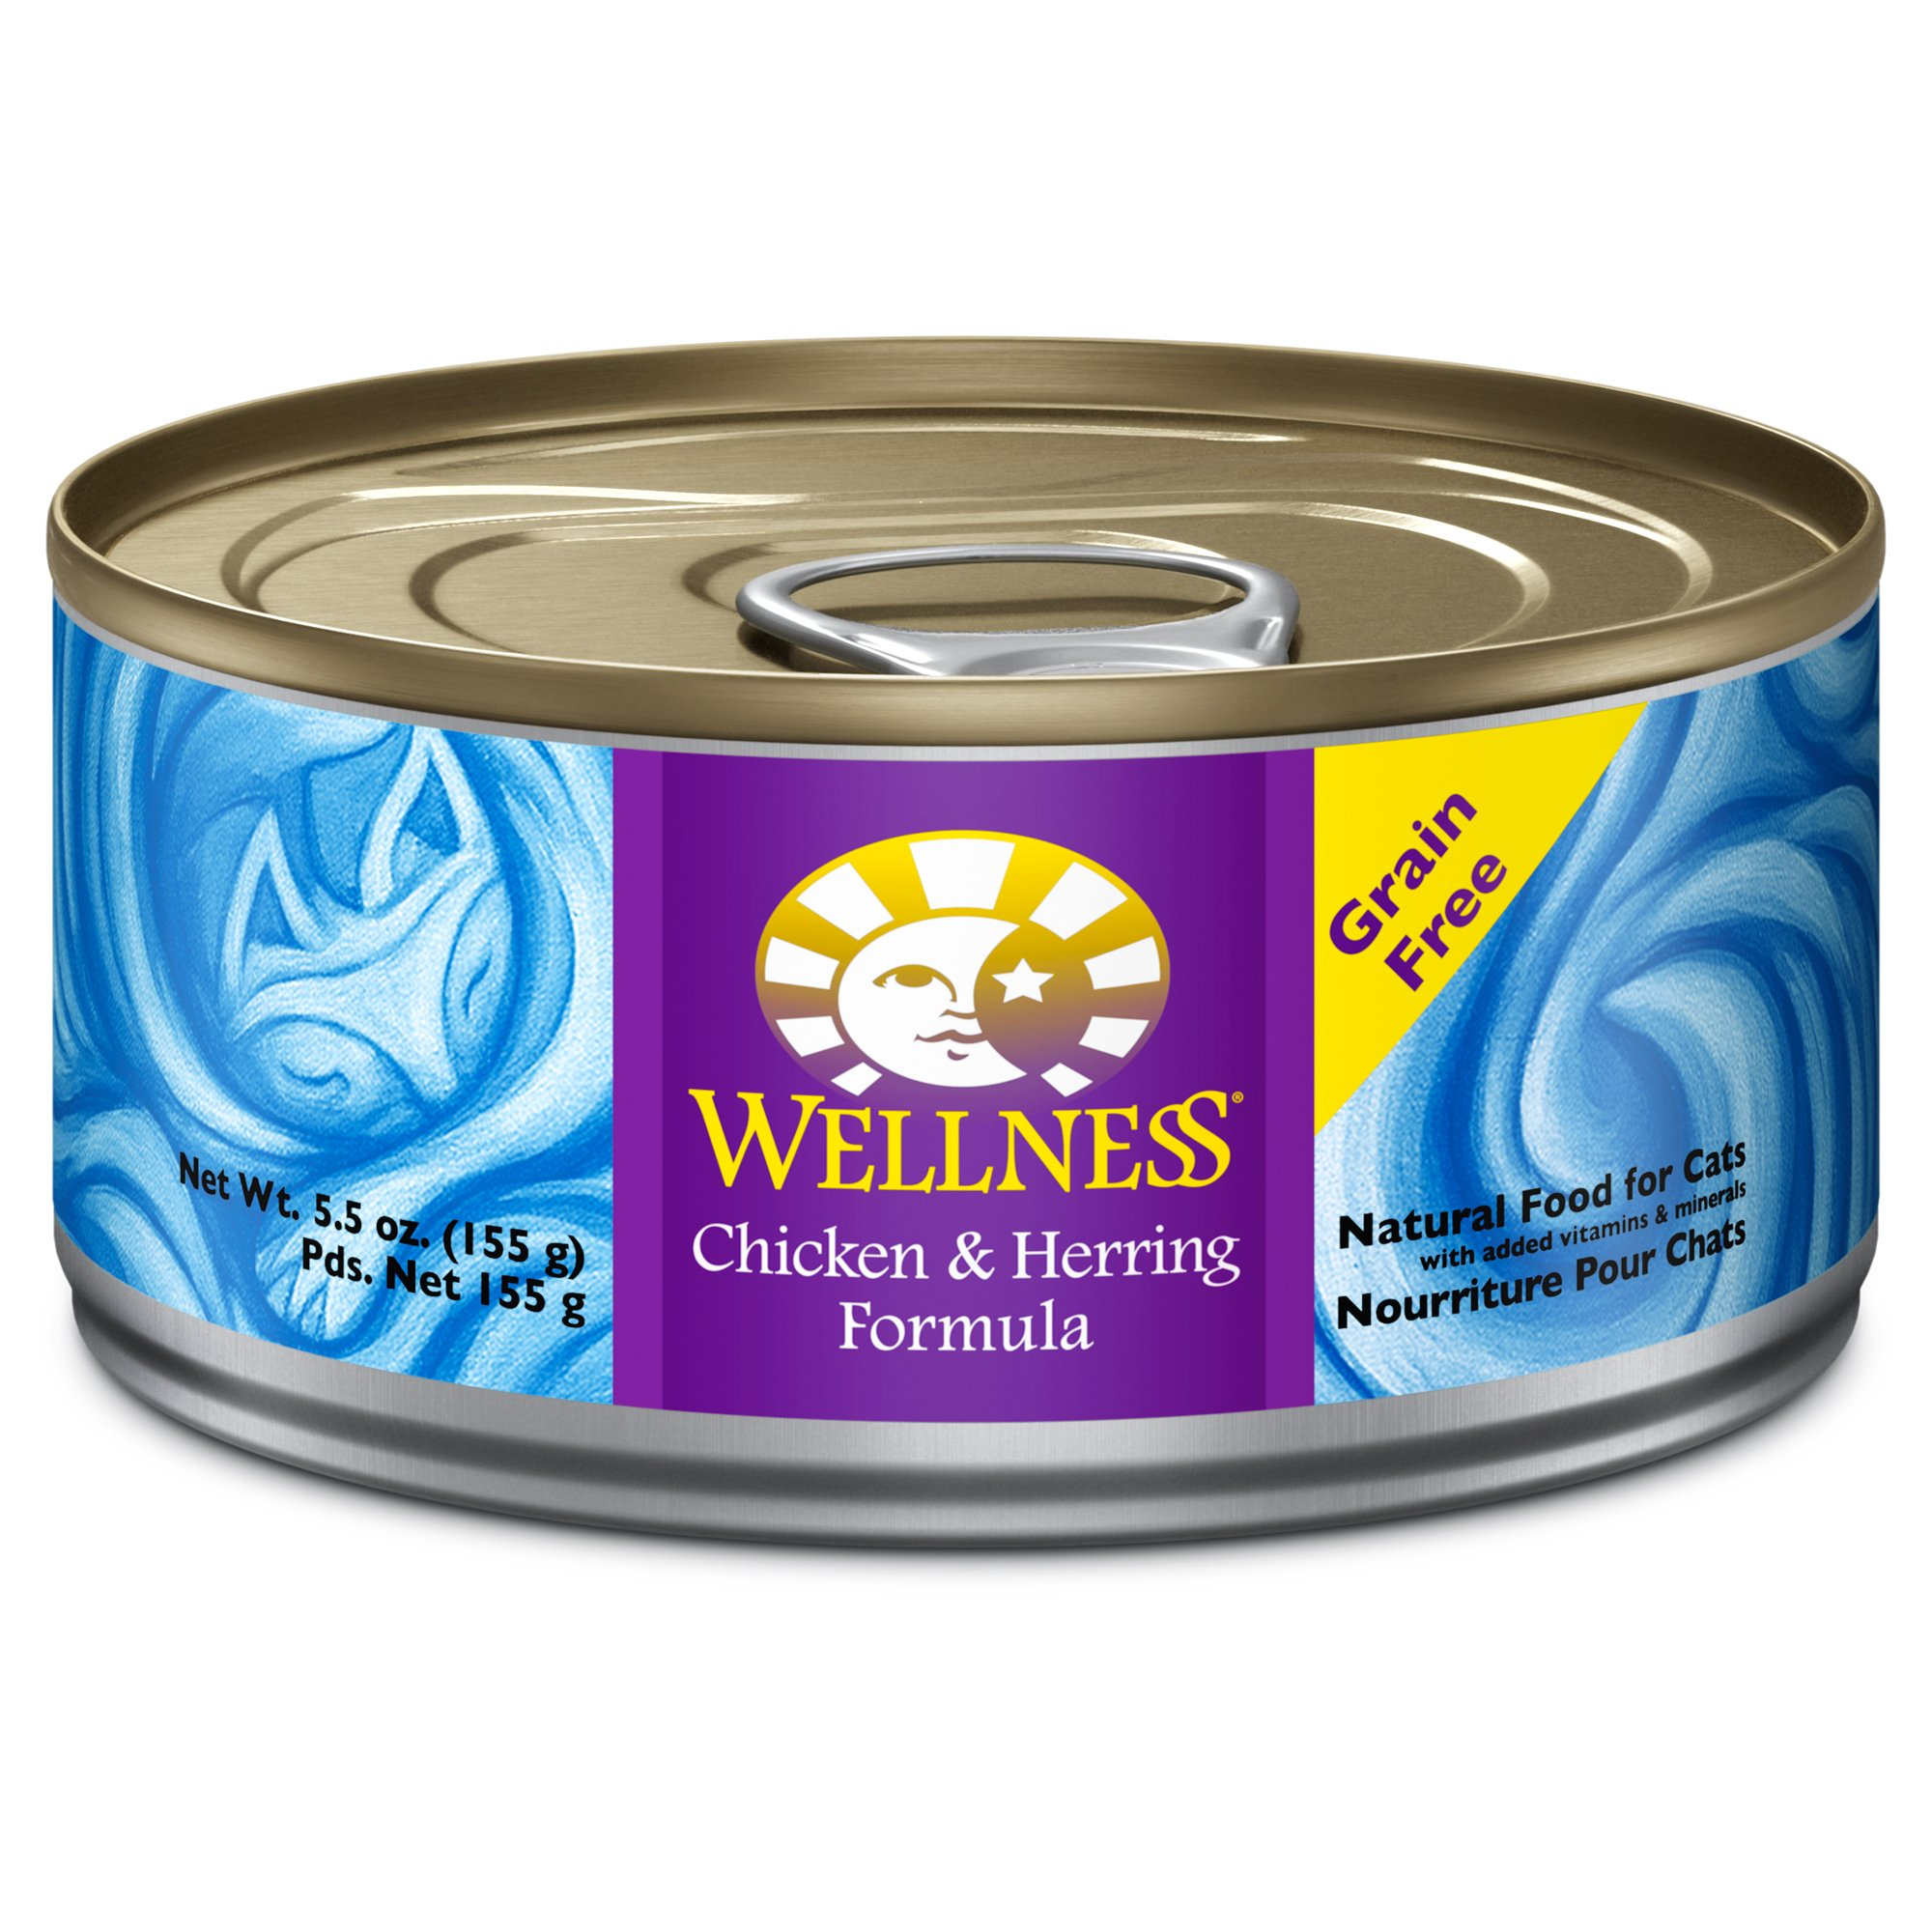 WELLNESS CHKN/HERR 5.5OZ 24 Count Case